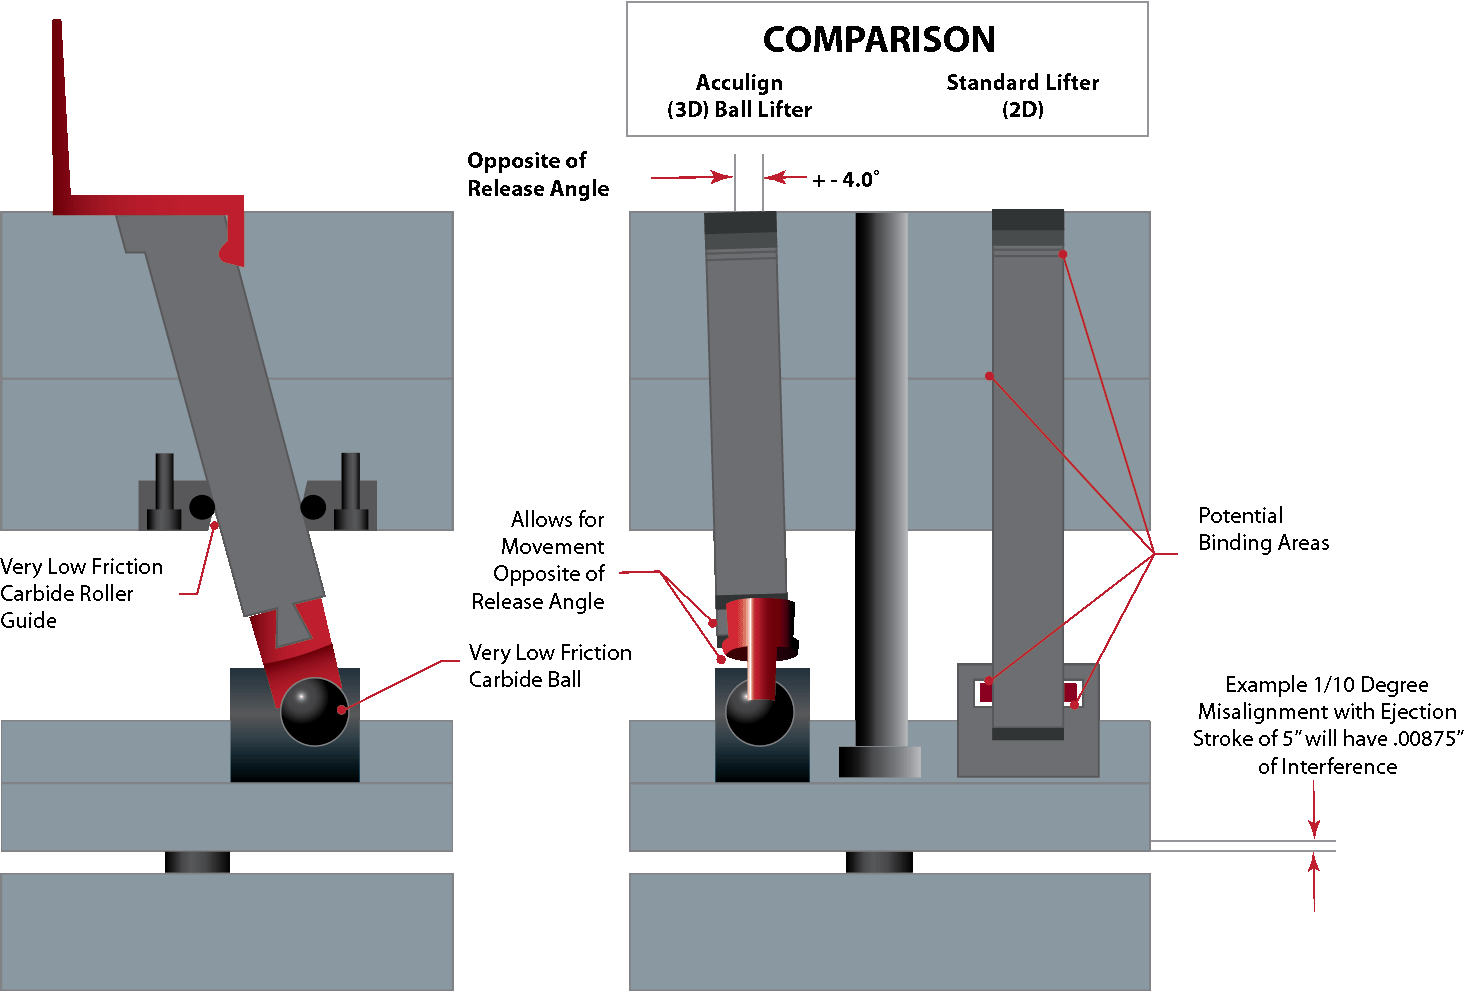 acculign-bar-only-compariosn